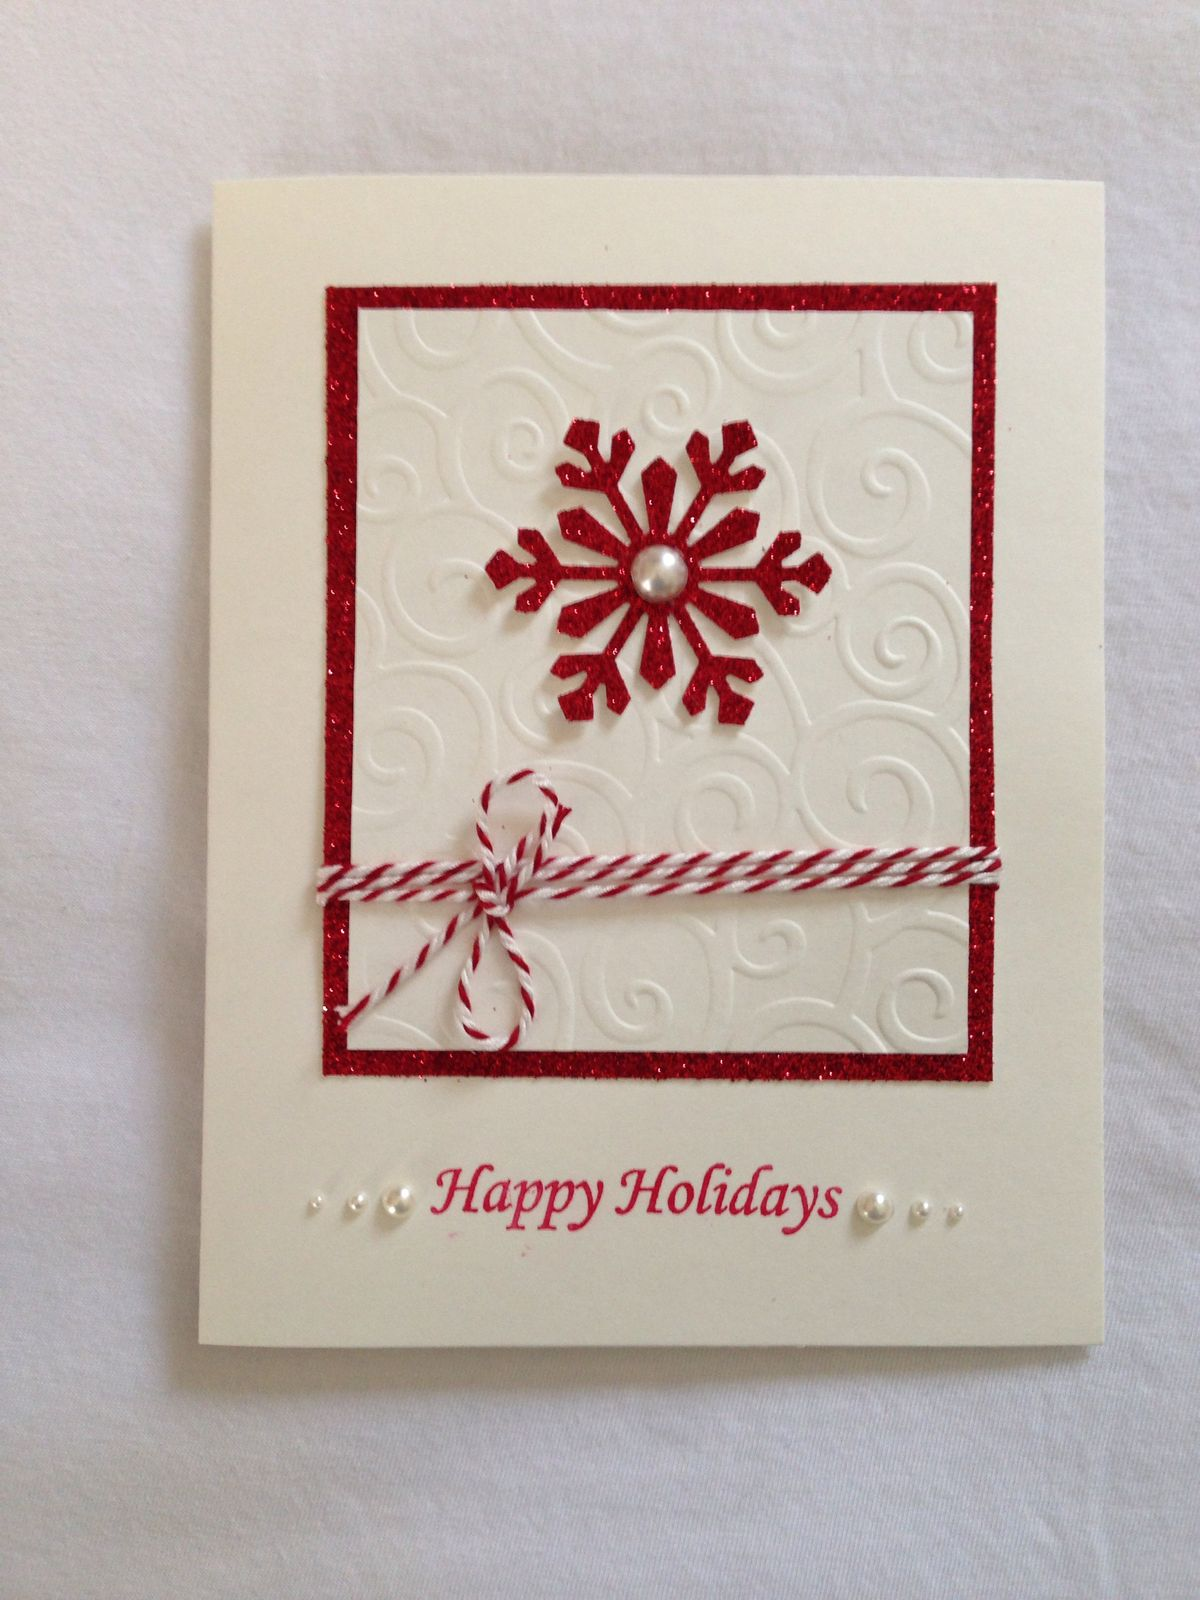 Ccc12 march merry christmas by ceedee cards and paper crafts at ccc12 march merry christmas by ceedee cards and paper crafts at splitcoaststampers cards christmas 1 pinterest merry cards and march m4hsunfo Image collections